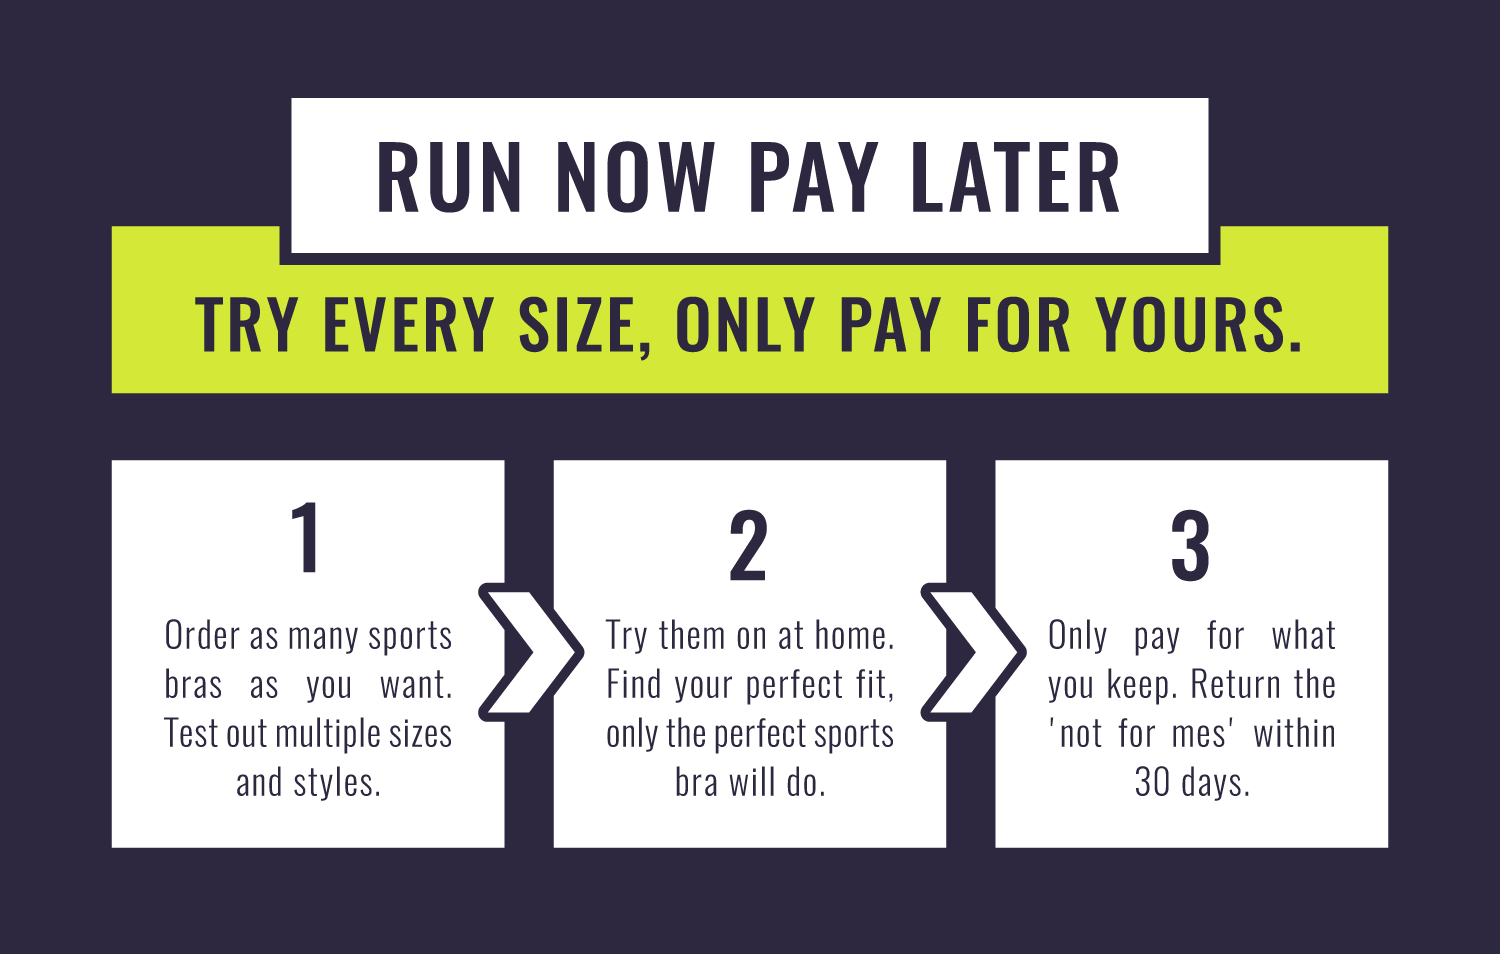 Run Now Pay Later - The Steps